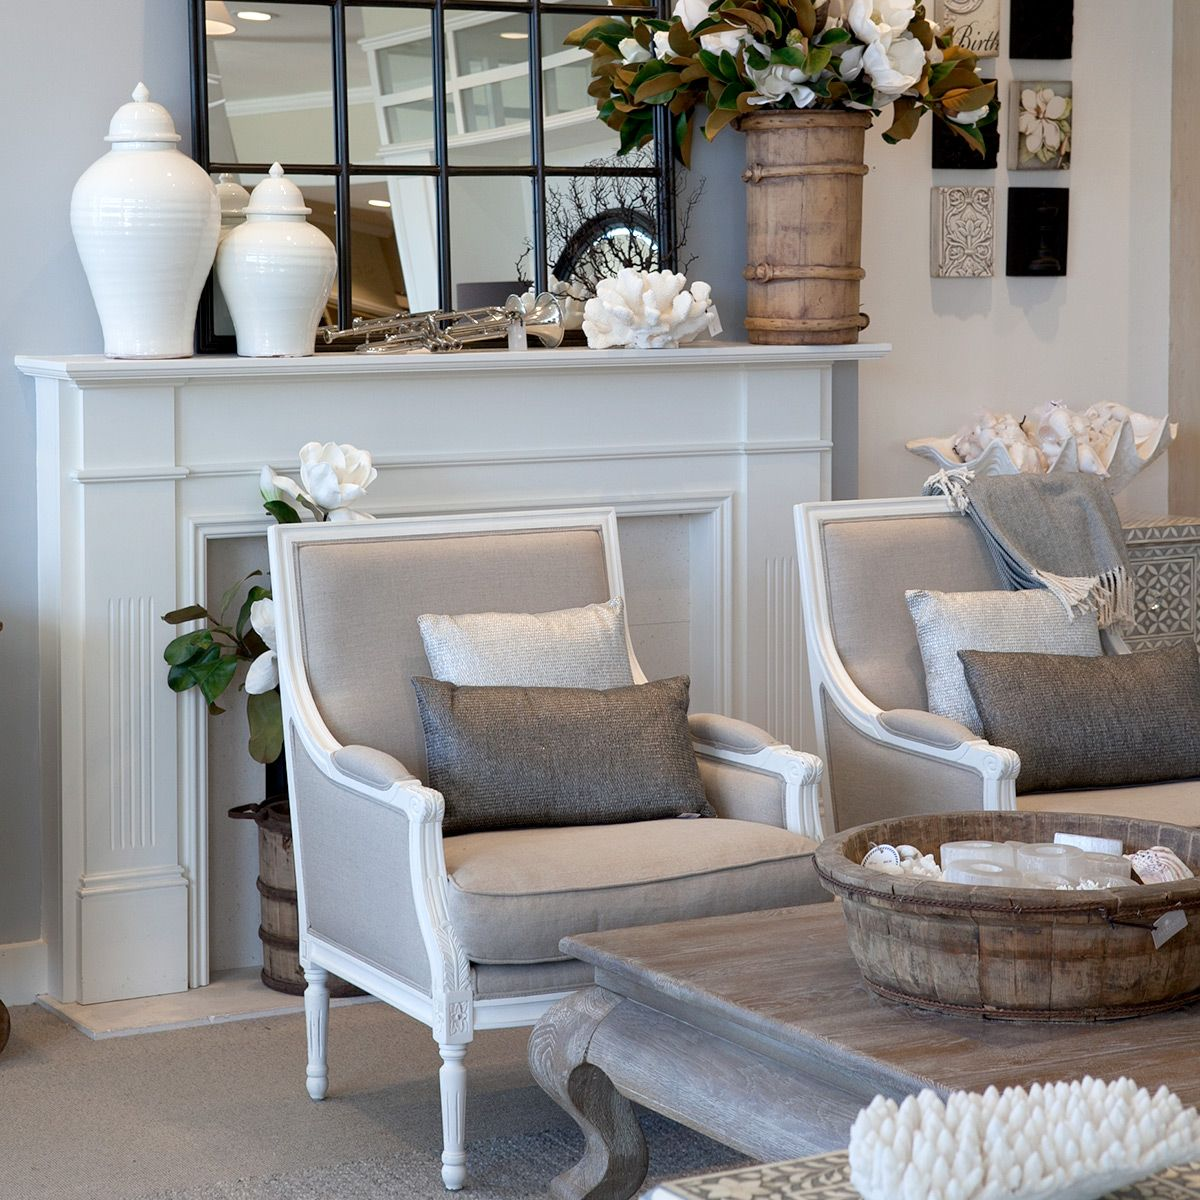 Linen Chairs With Grey Cushions In Front Of Mantle